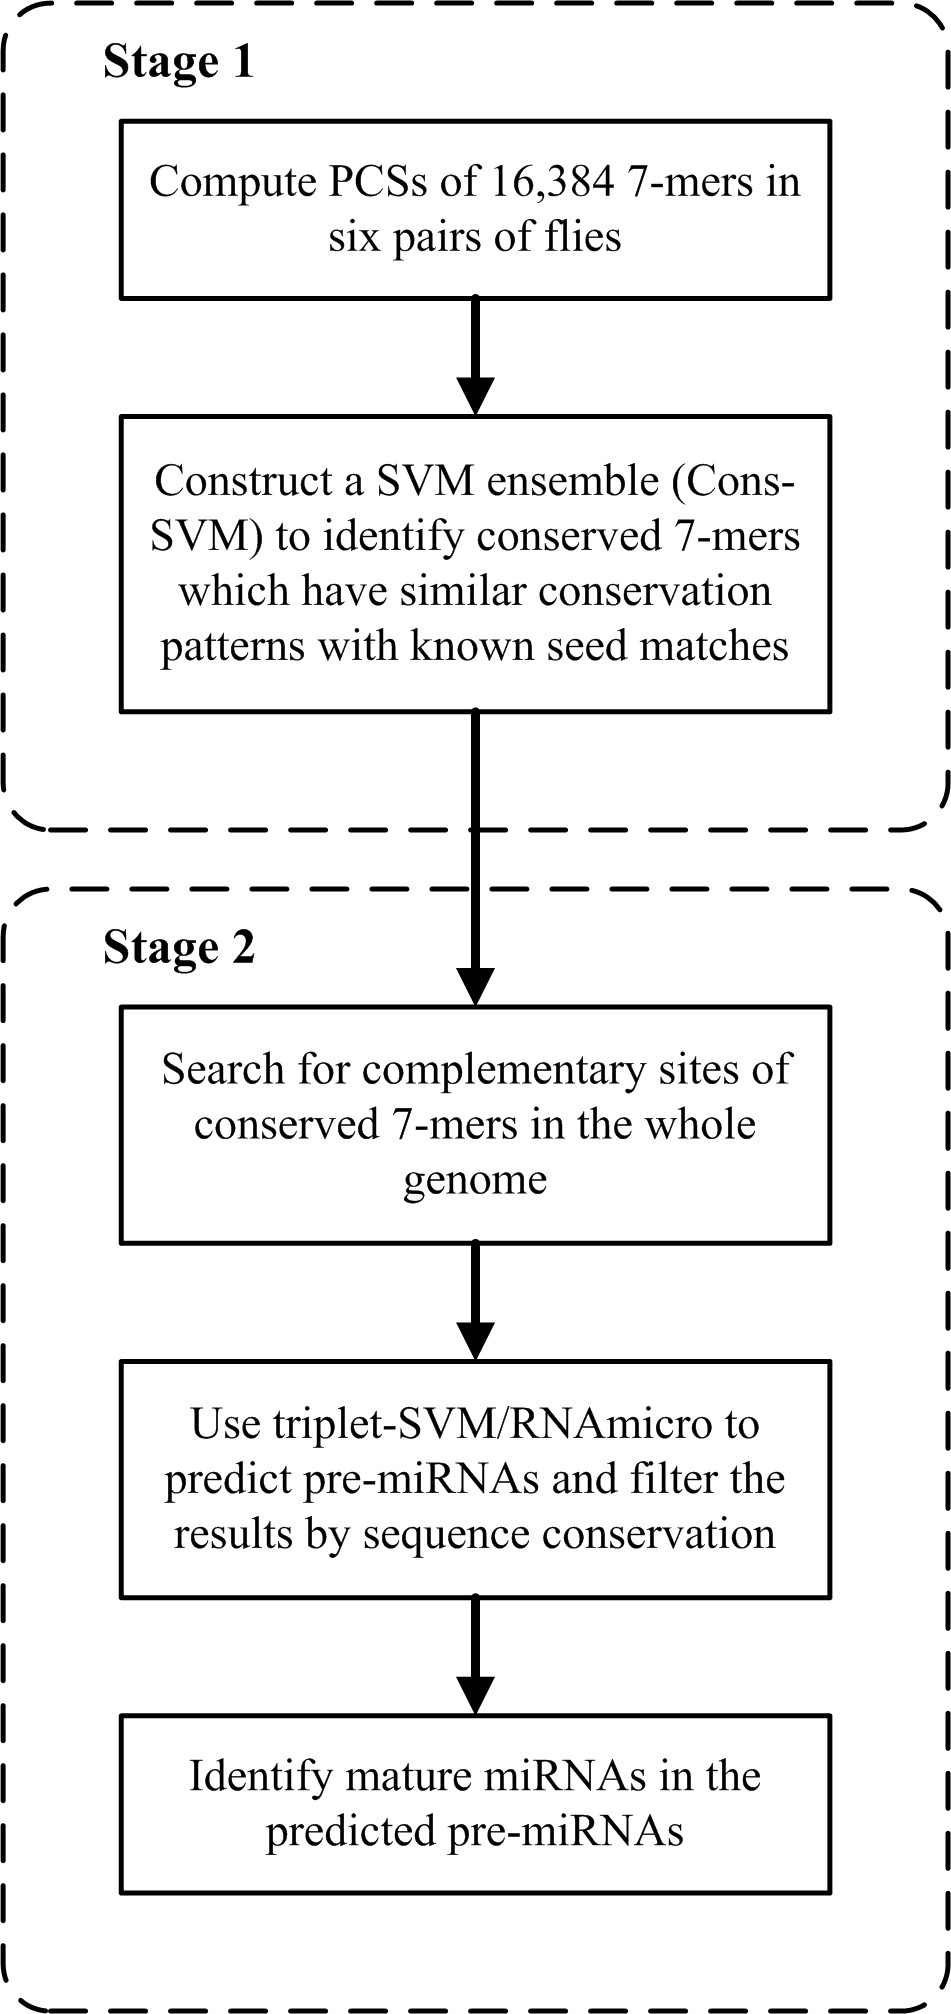 http://static-content.springer.com/image/art%3A10.1186%2F1471-2105-8-432/MediaObjects/12859_2006_Article_1804_Fig1_HTML.jpg